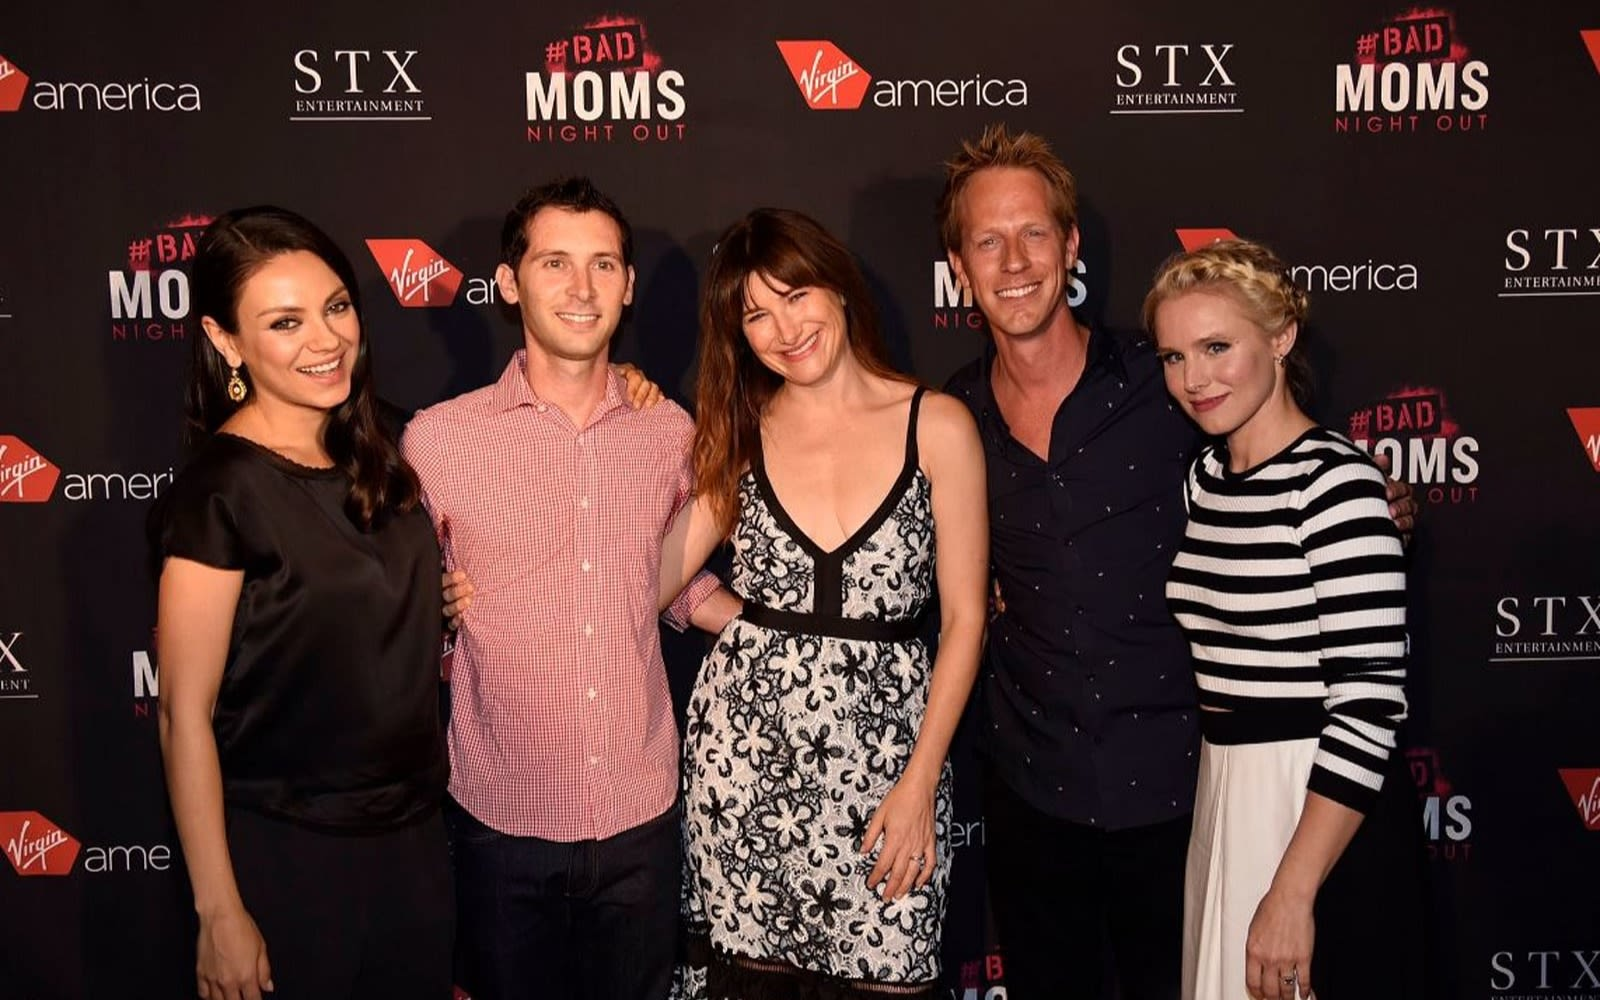 Bad Moms cast at an awards ceremony